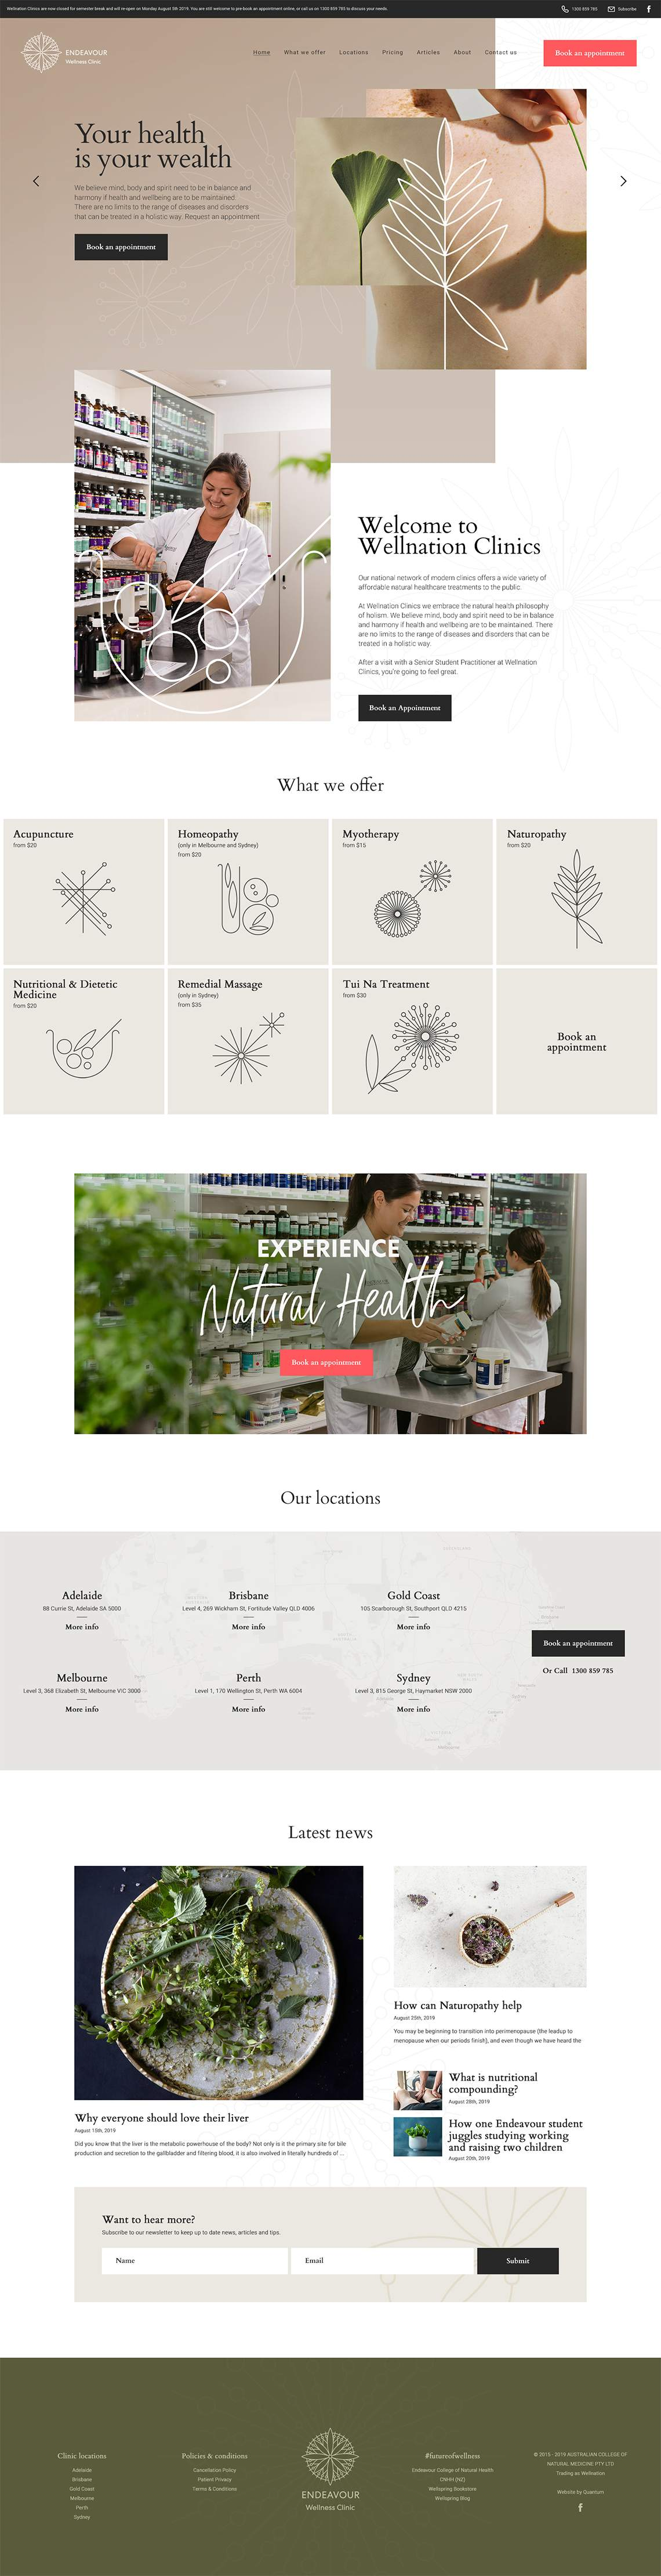 Endeavour Clinic Full Home Page